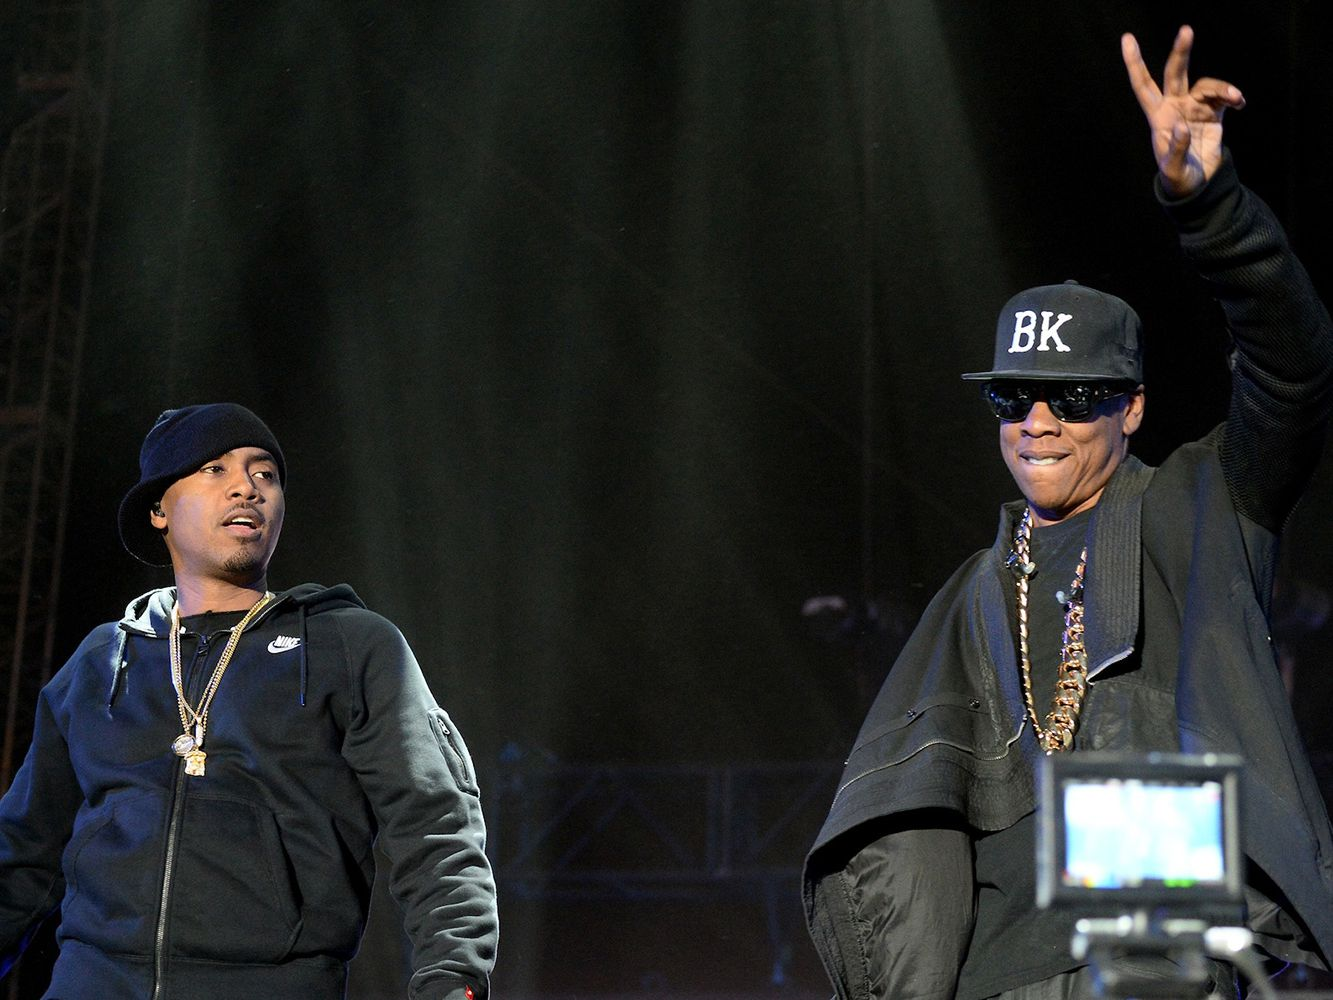 5cc65bcd07d45 Jay-Z vs. Nas  The Story Behind the Beef